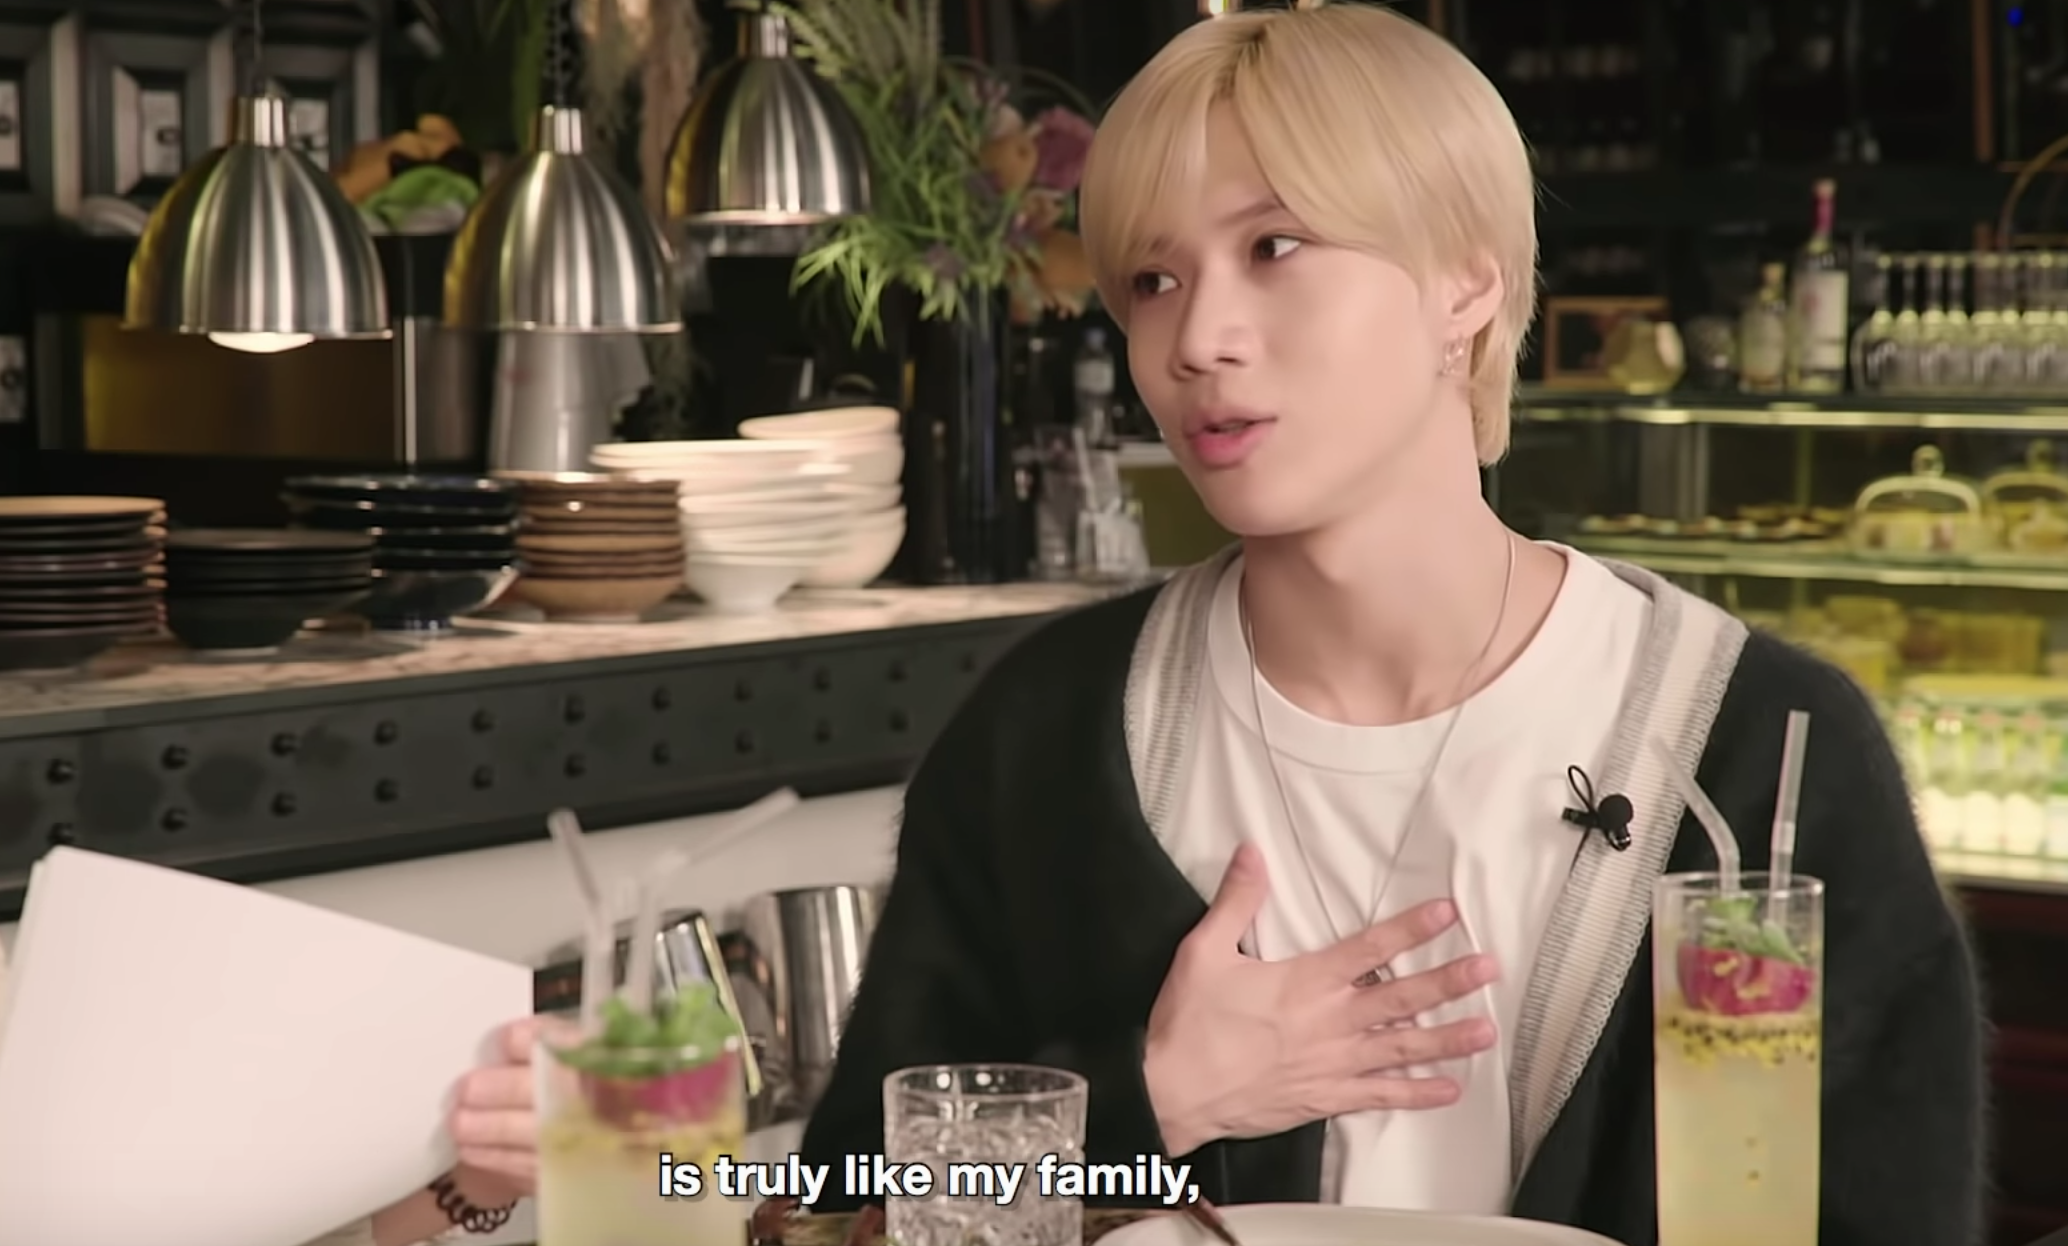 As SM's First Soloist from a Group, SHINee's Taemin Shared How His